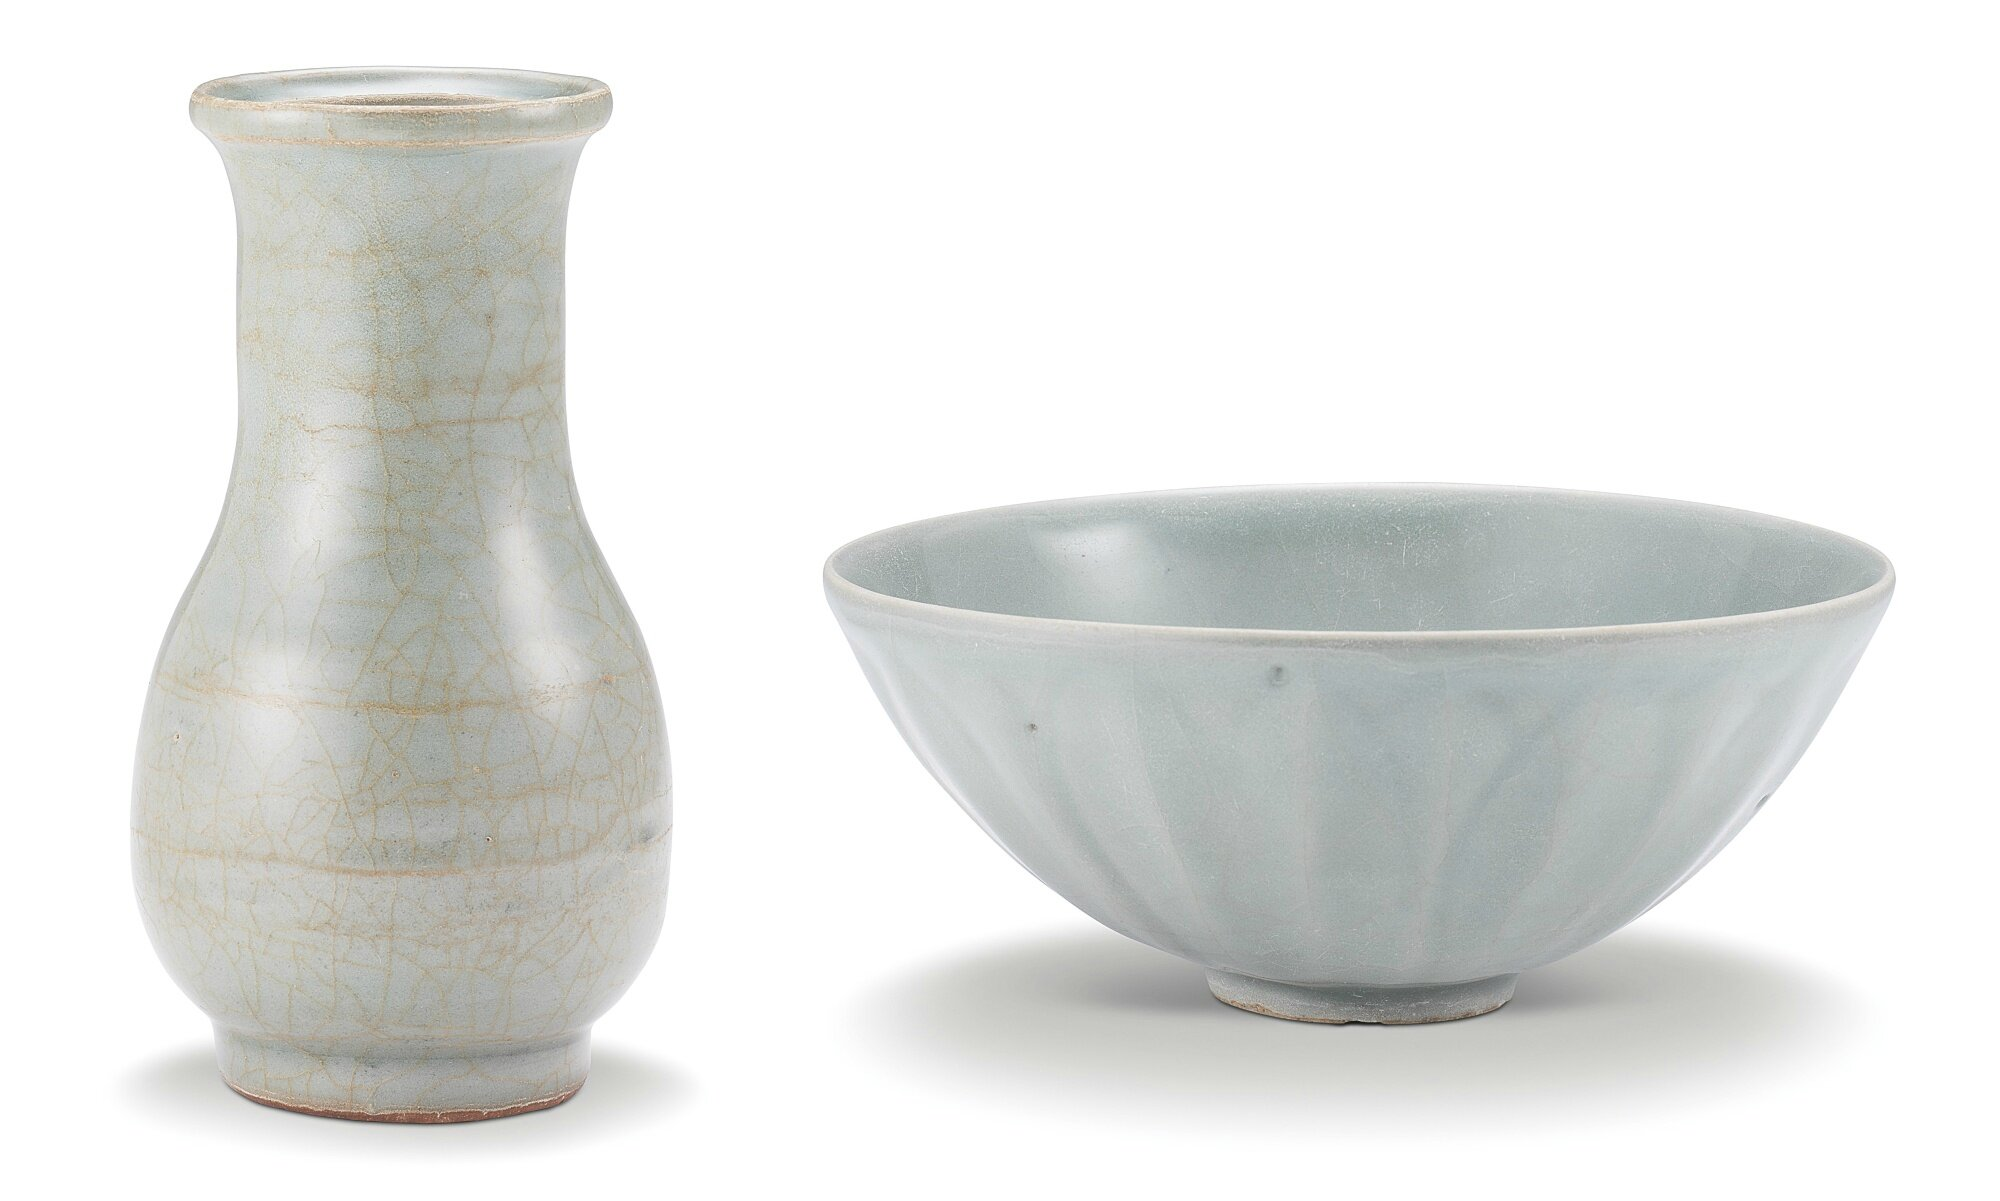 A Longquan celadon vase and a Longquan celadon 'lotus' bowl, Southern Song dynasty (1127-1279)